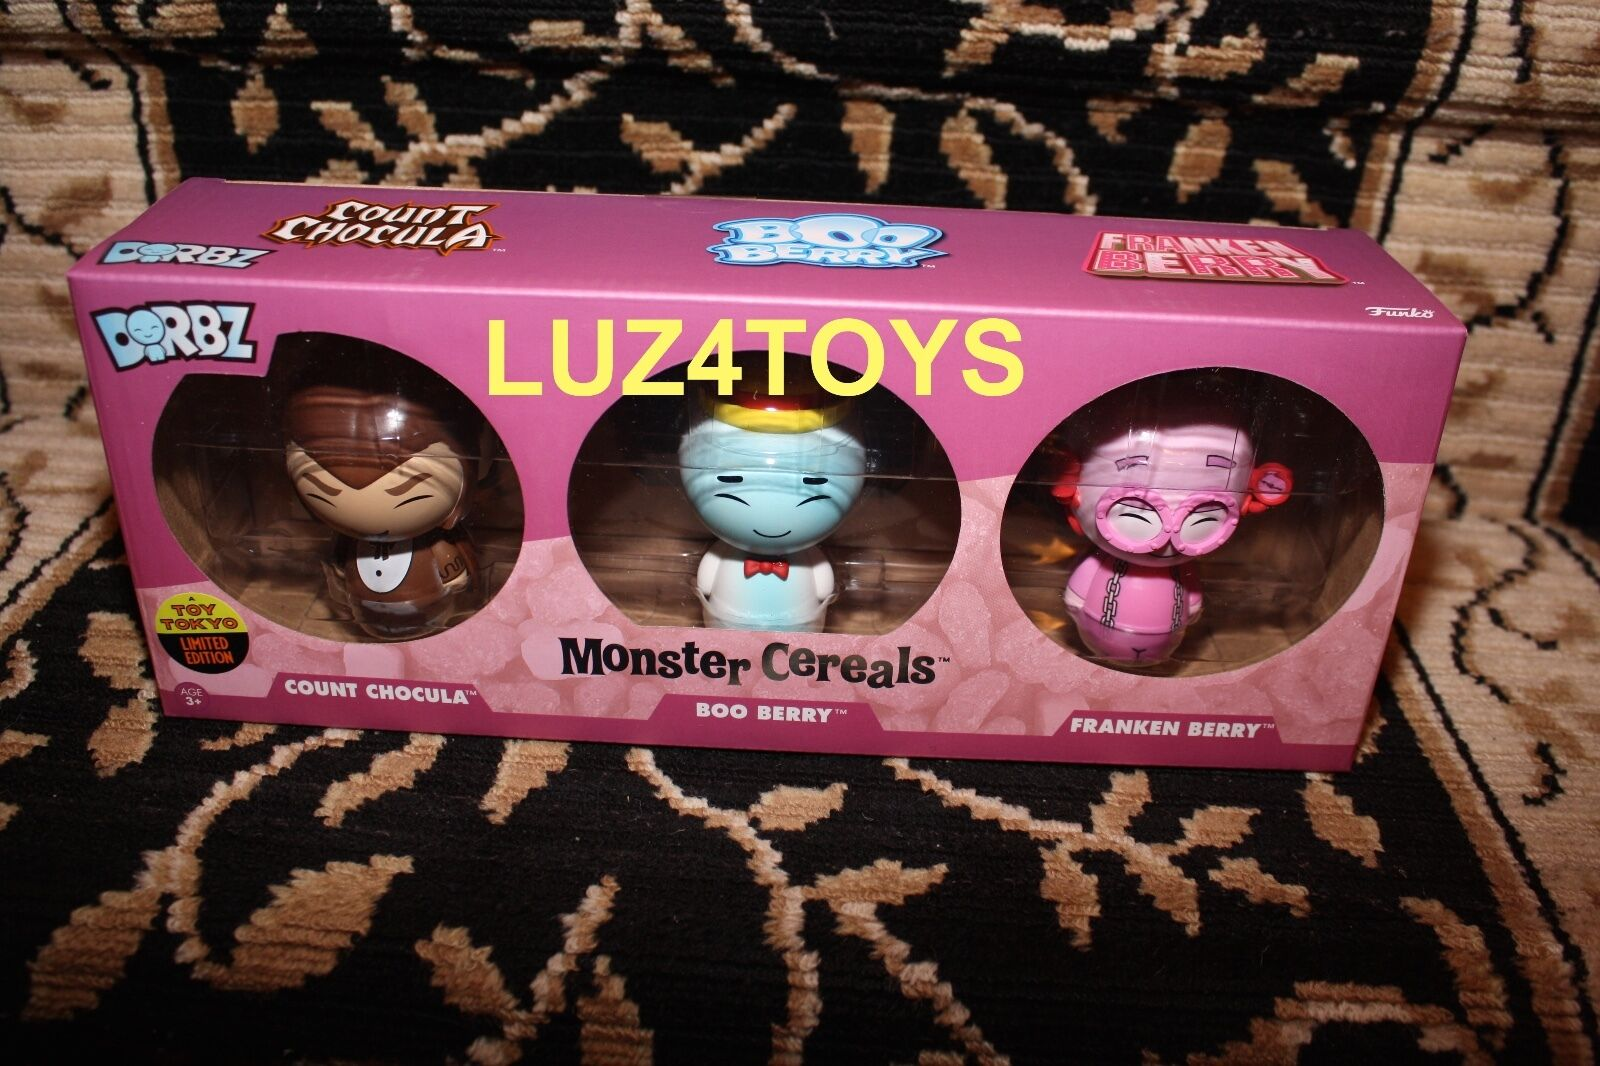 2016 NYCC Toy Tokyo Exclusive Funko Pop & Dorbz Dorbz Dorbz complete Set of 7 f0b09a